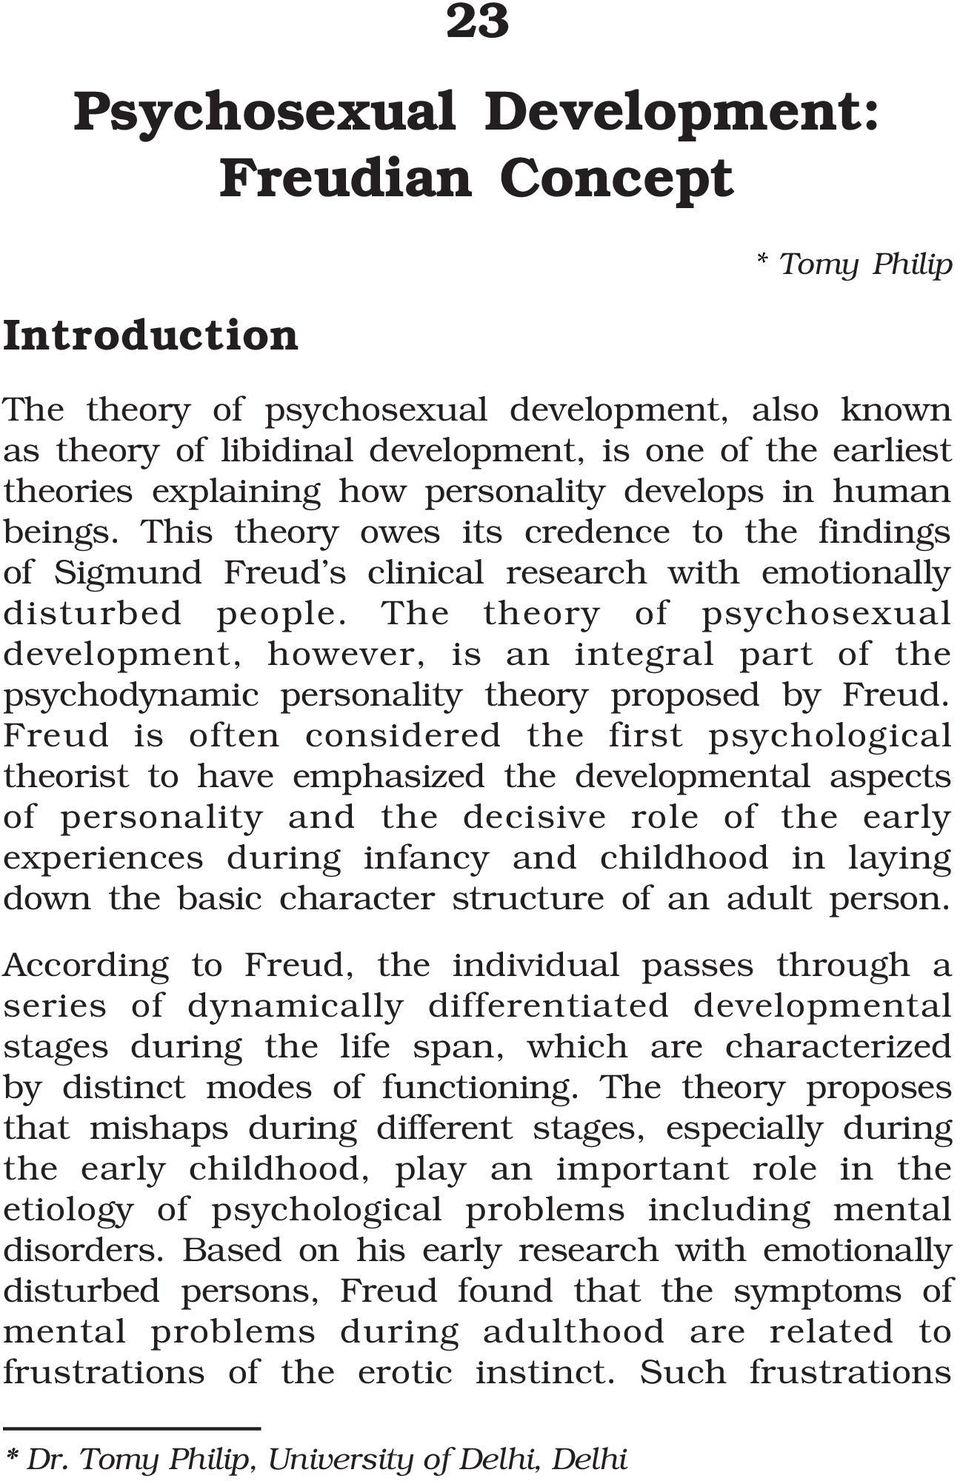 The theory of psychosexual development, however, is an integral part of the psychodynamic personality theory proposed by Freud.